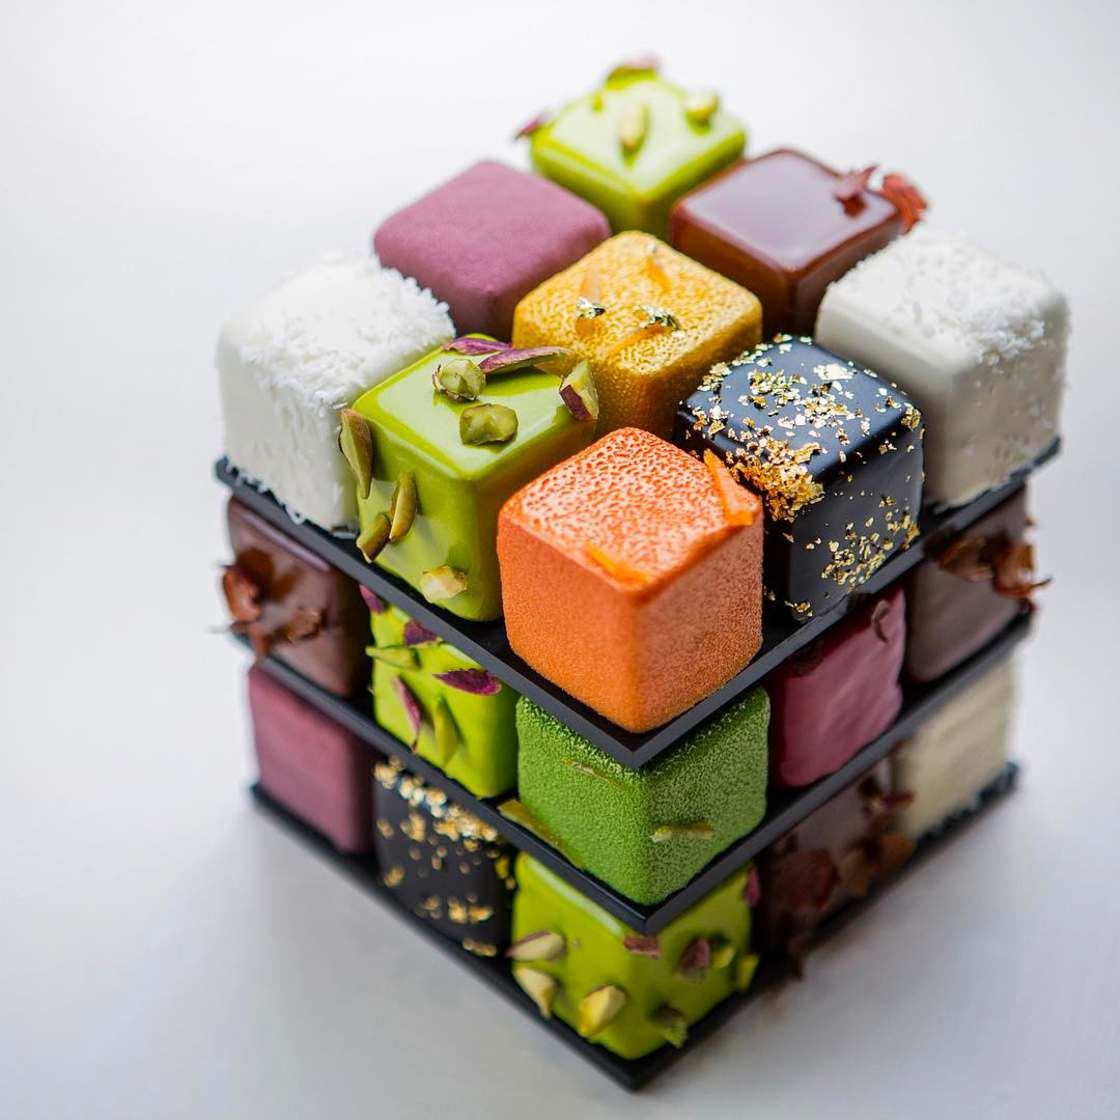 Rubik's Cake – An incredibly appetizing geometric pastry!